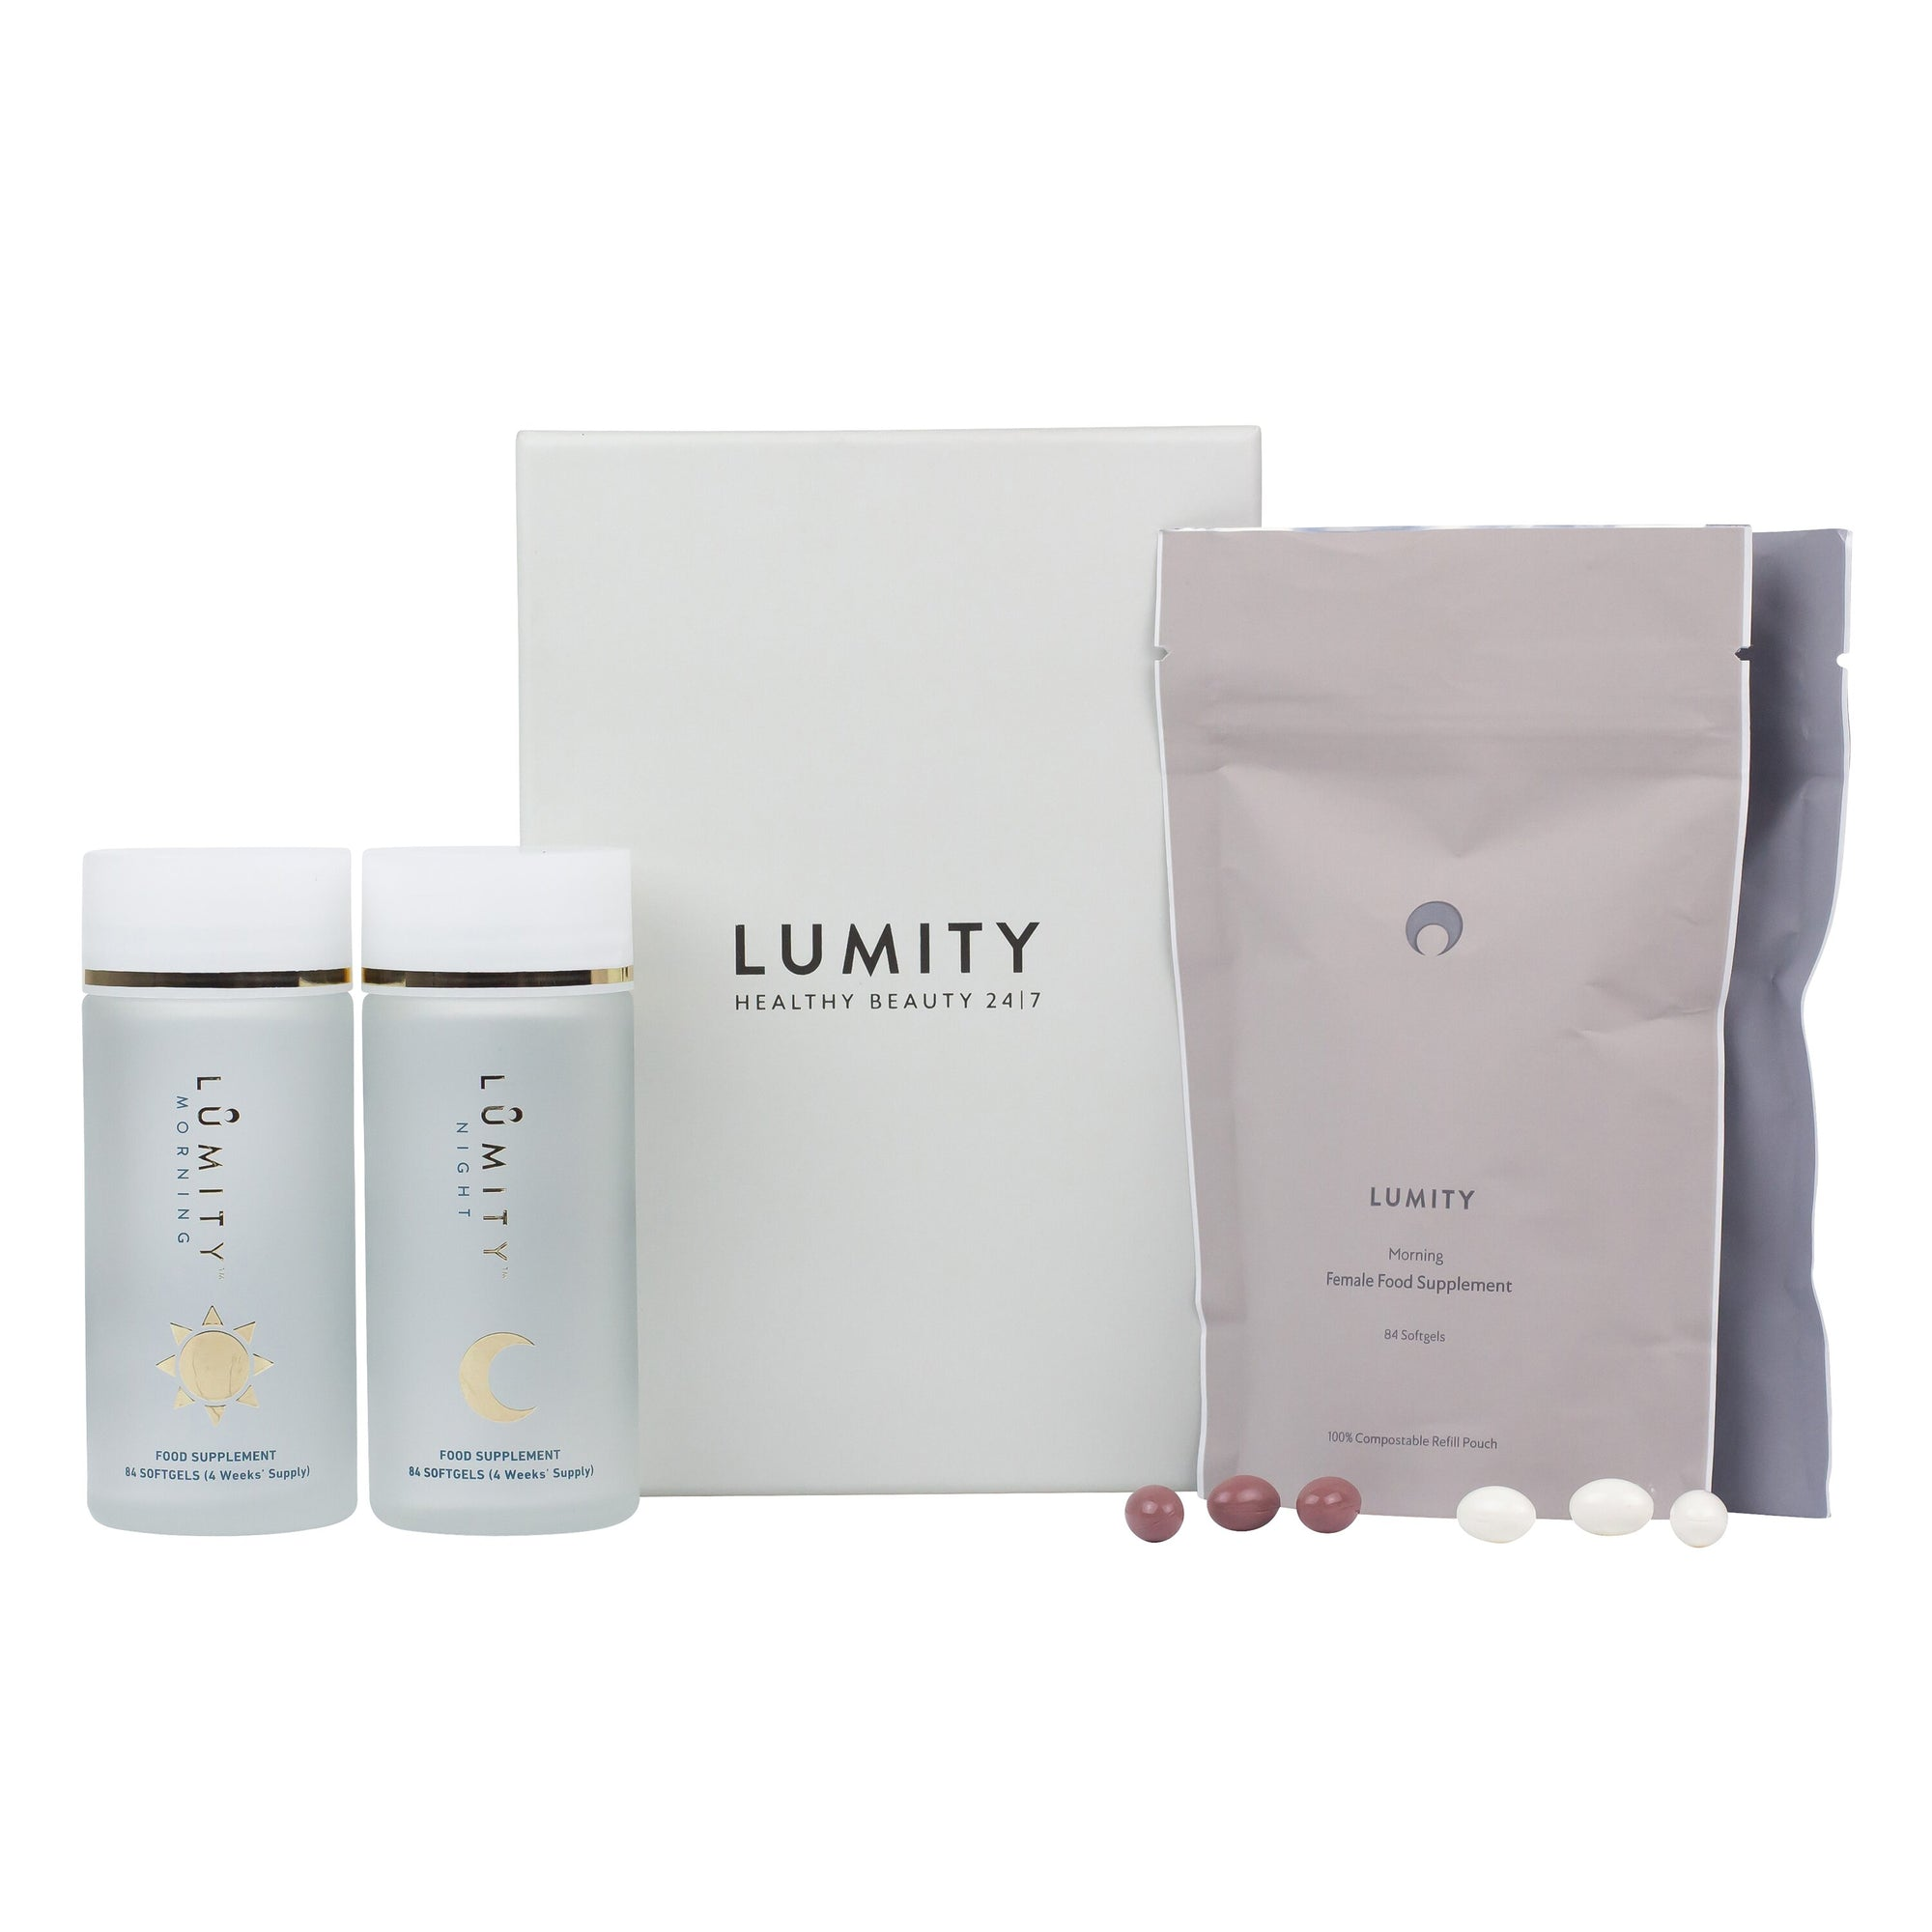 Lumity Day & Night Nutritional Supplements